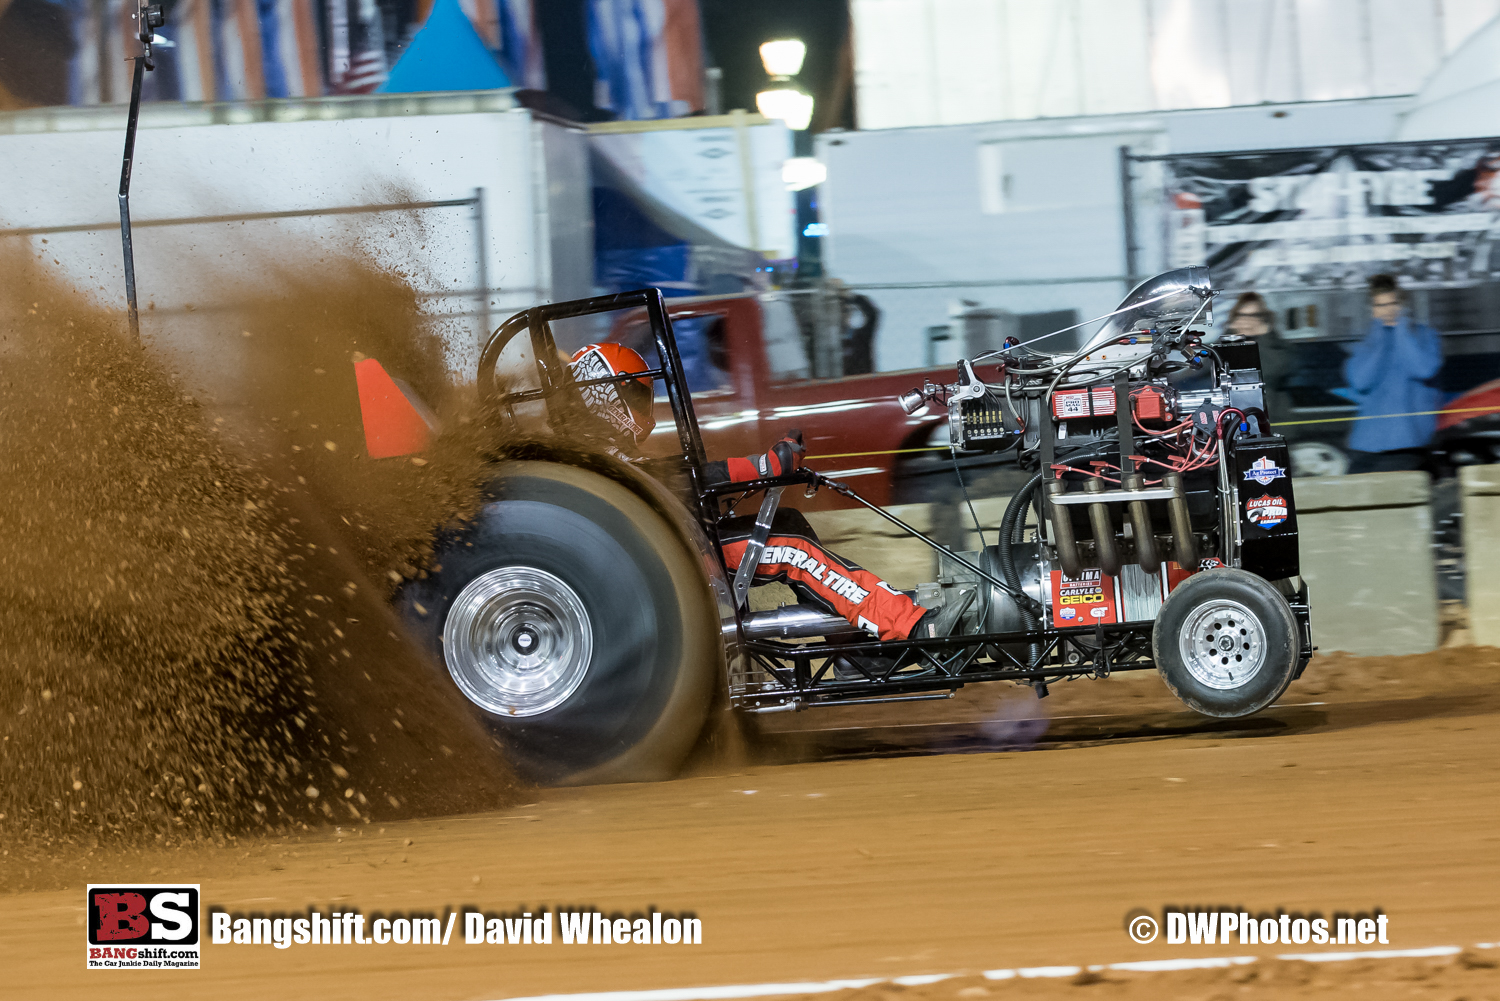 Pulling Action Gallery: More Screaming Engines, Killer Rigs, and Great Photos From The NTPA NC State Fair Pull